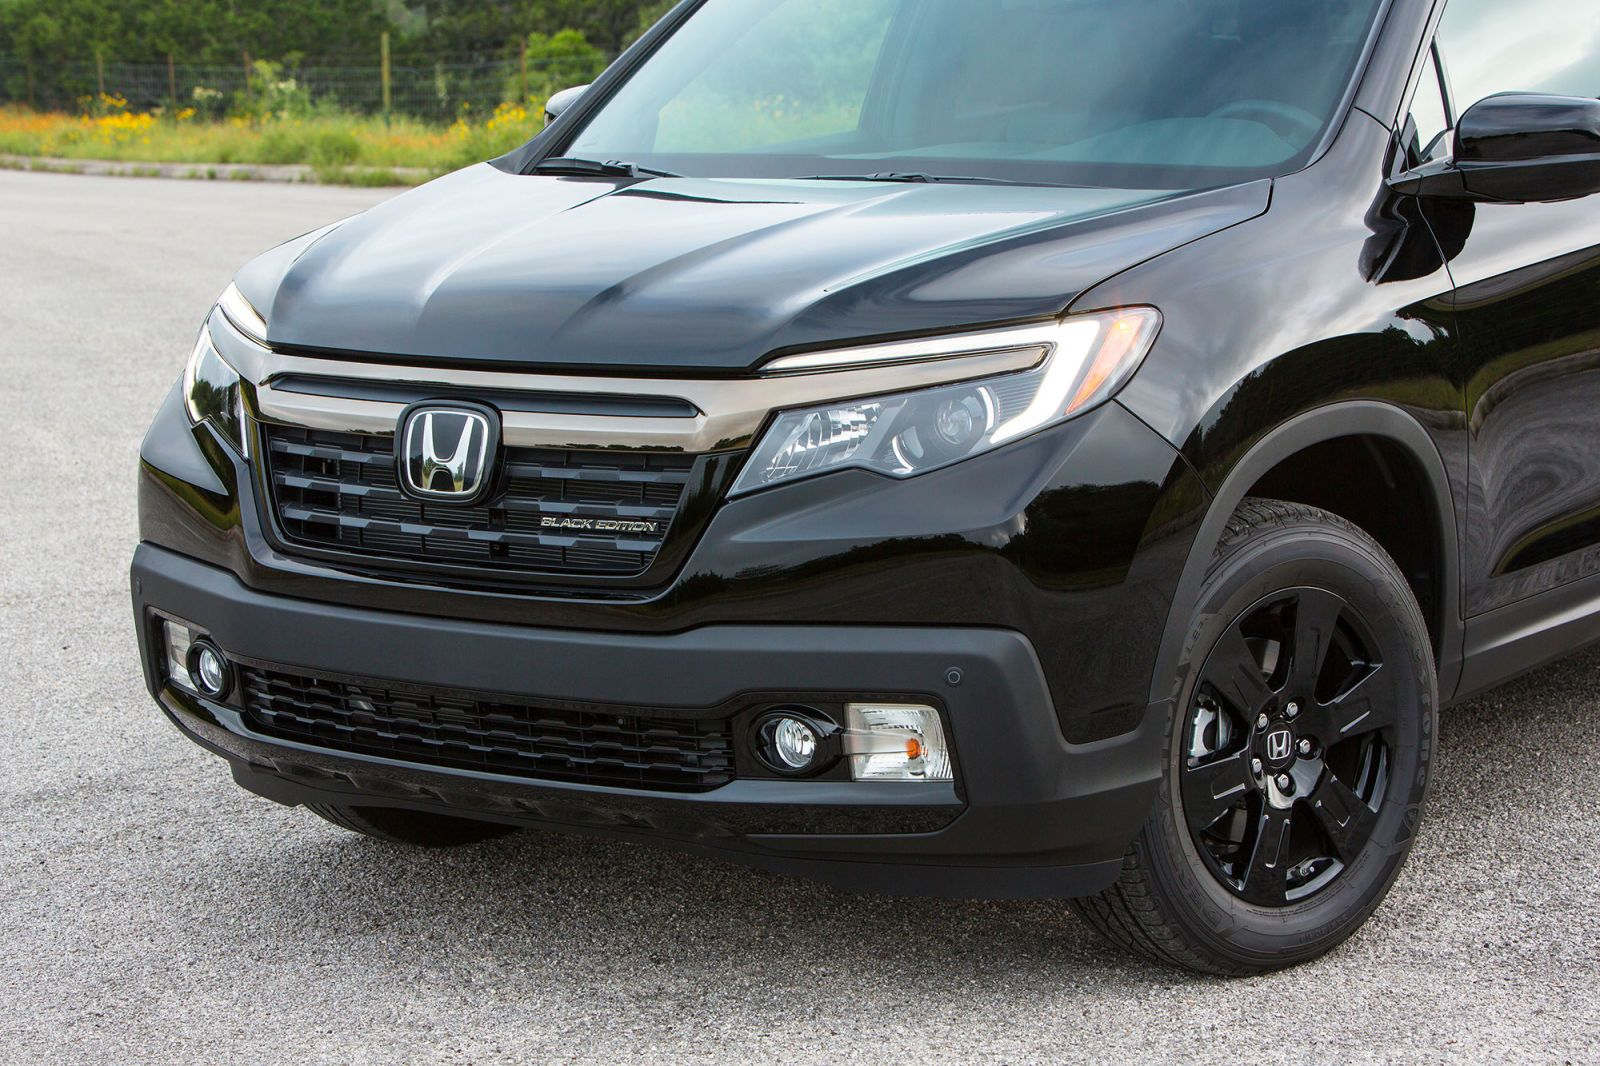 2017 honda ridgeline first drive ridgeline road test Honda Ridgeline Undercarriage the ridgeline s dynamics are equally car like on pavement at speed the honda feels planted in turns with little body roll and a confidently low center of